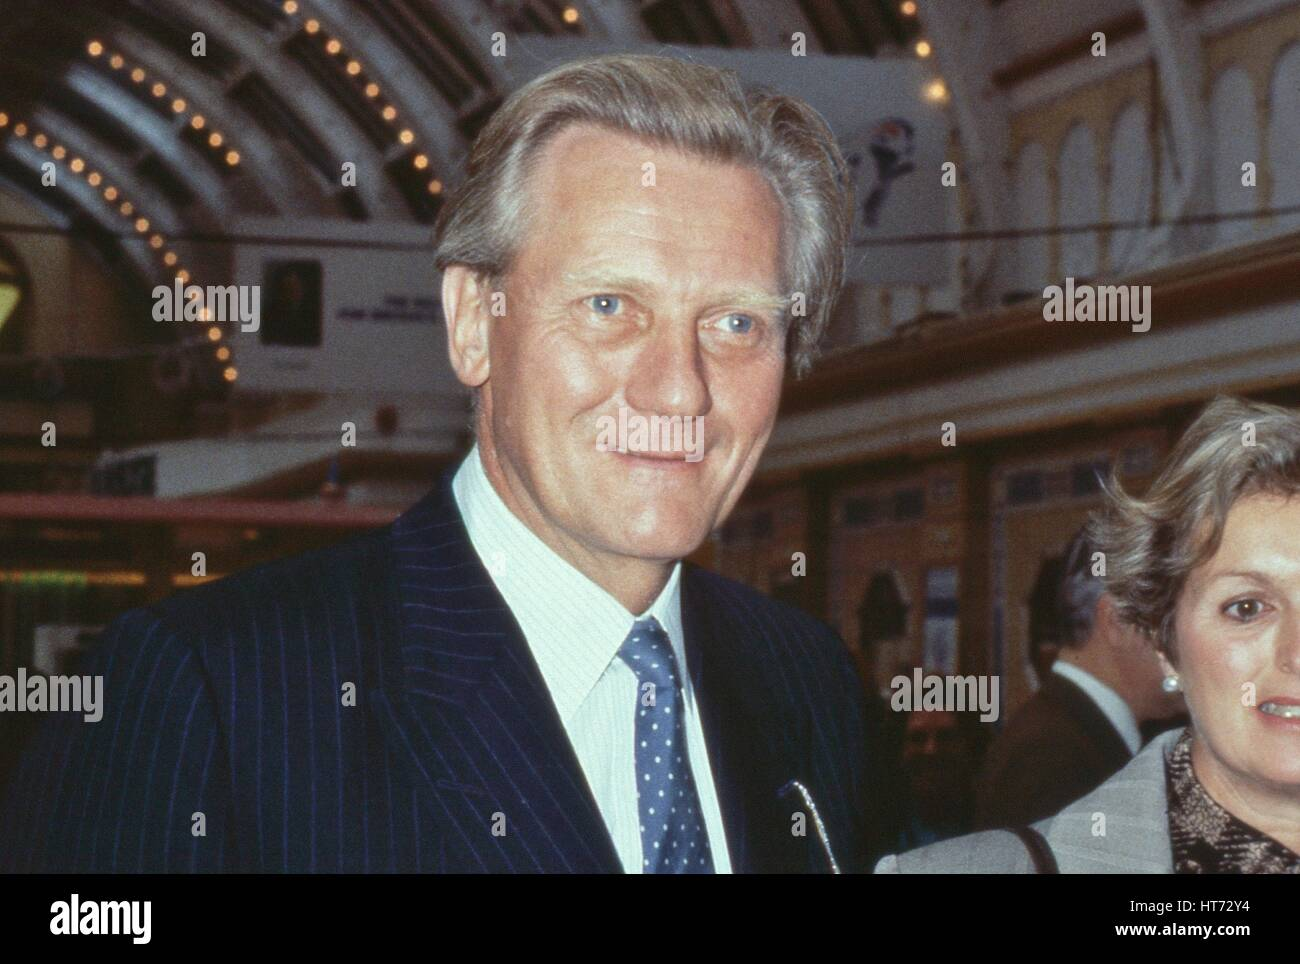 Michael Heseltine, Conservative party Member of Parliament for Henley and former Secretary of State for Defence, Stock Photo